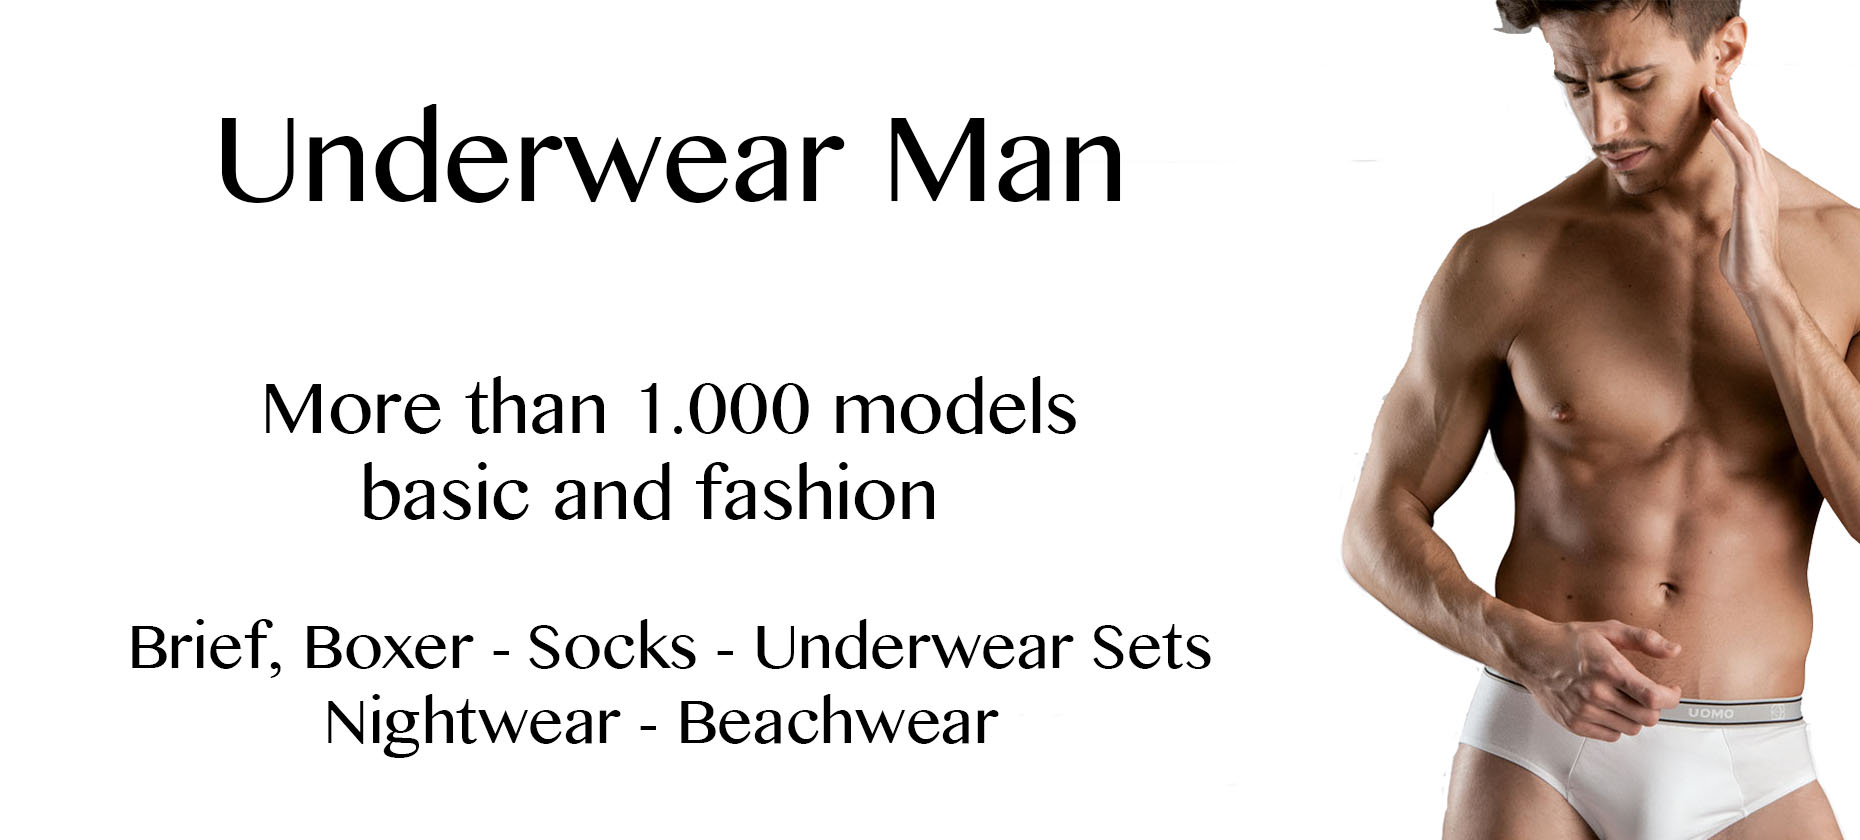 Wholesale and distribution brief short socks nightwear man